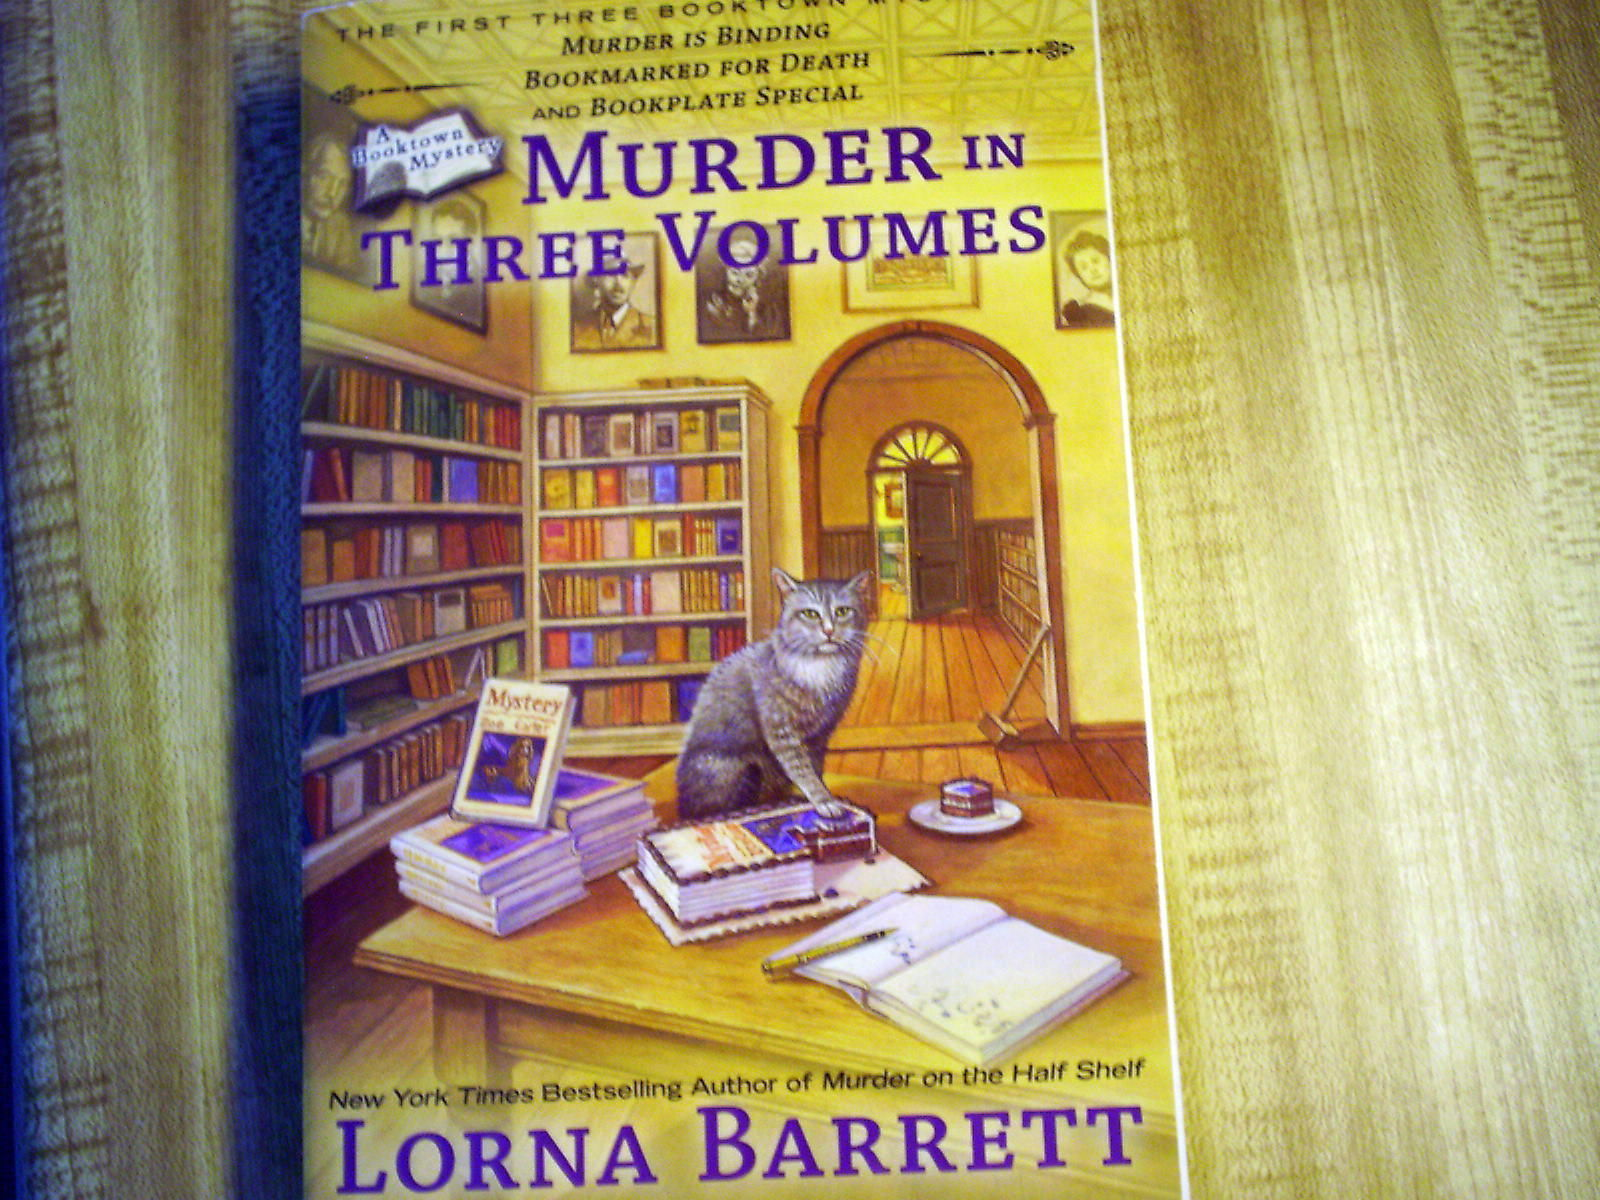 Primary image for Murder in Three Volumes by Lorna Barrett (2012, Paperback) a Booktown Mystery